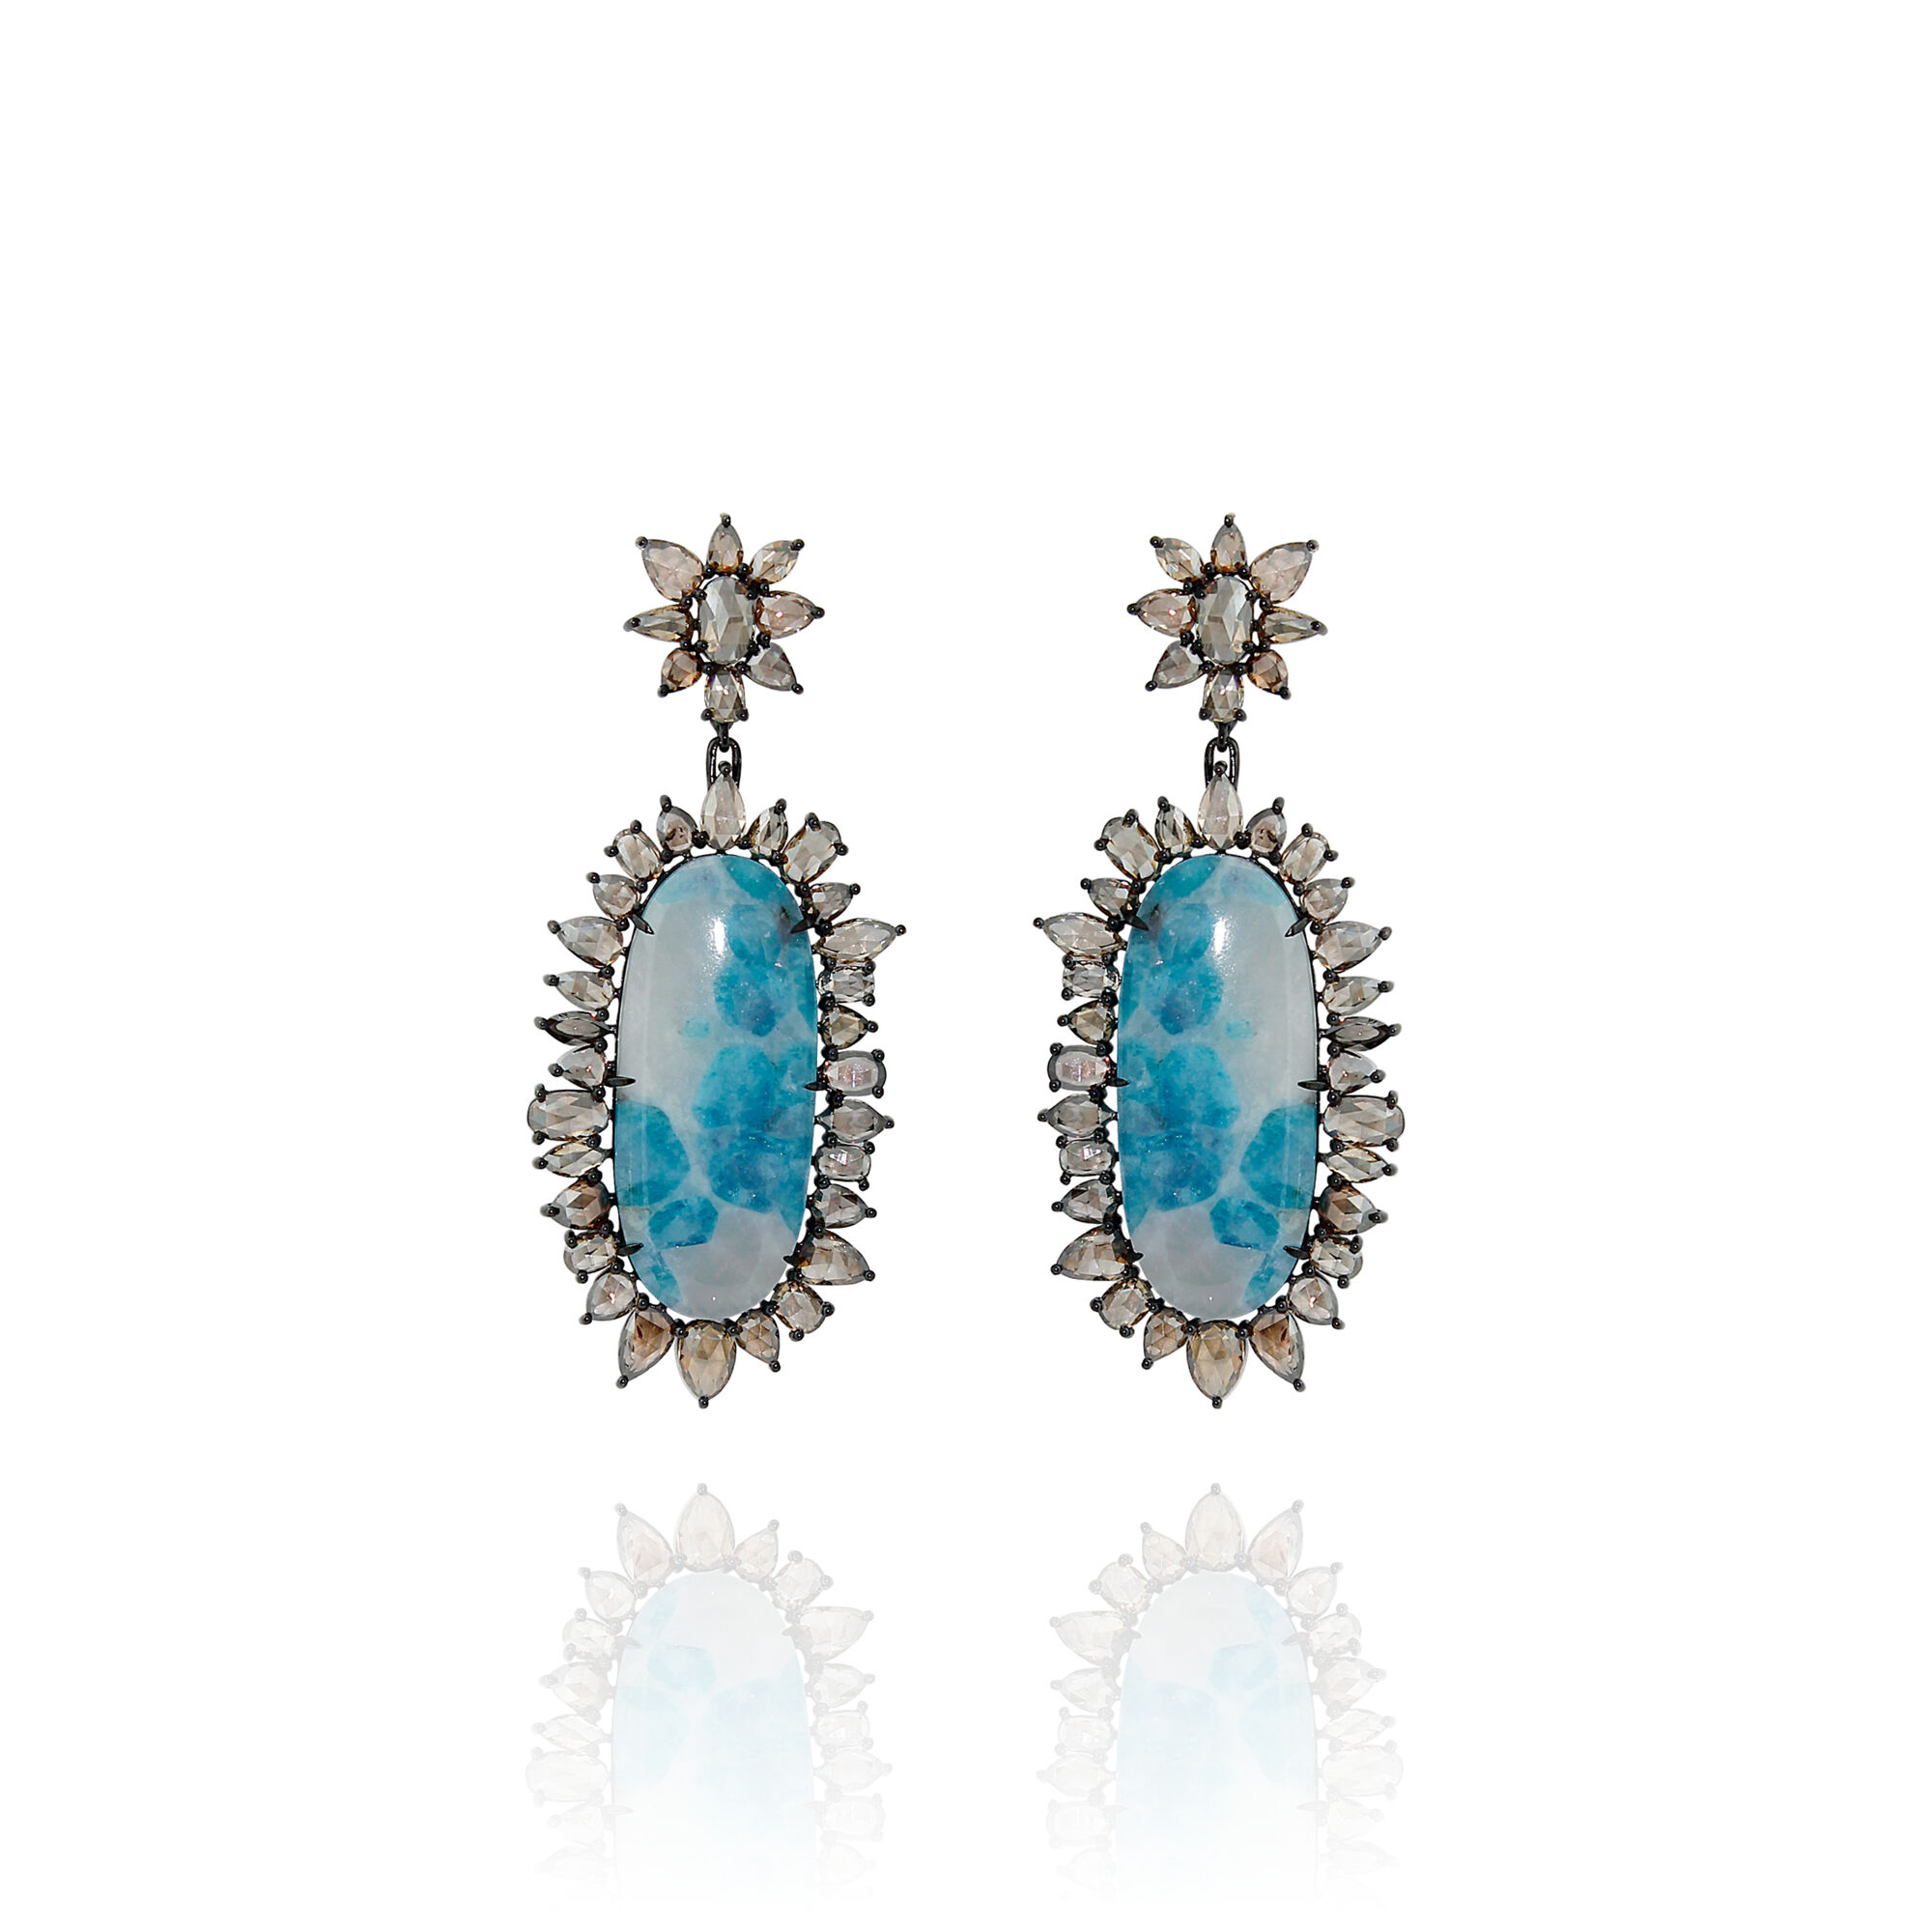 2673634c8 Sutra Paraiba Tourmaline Earrings Annoushka International